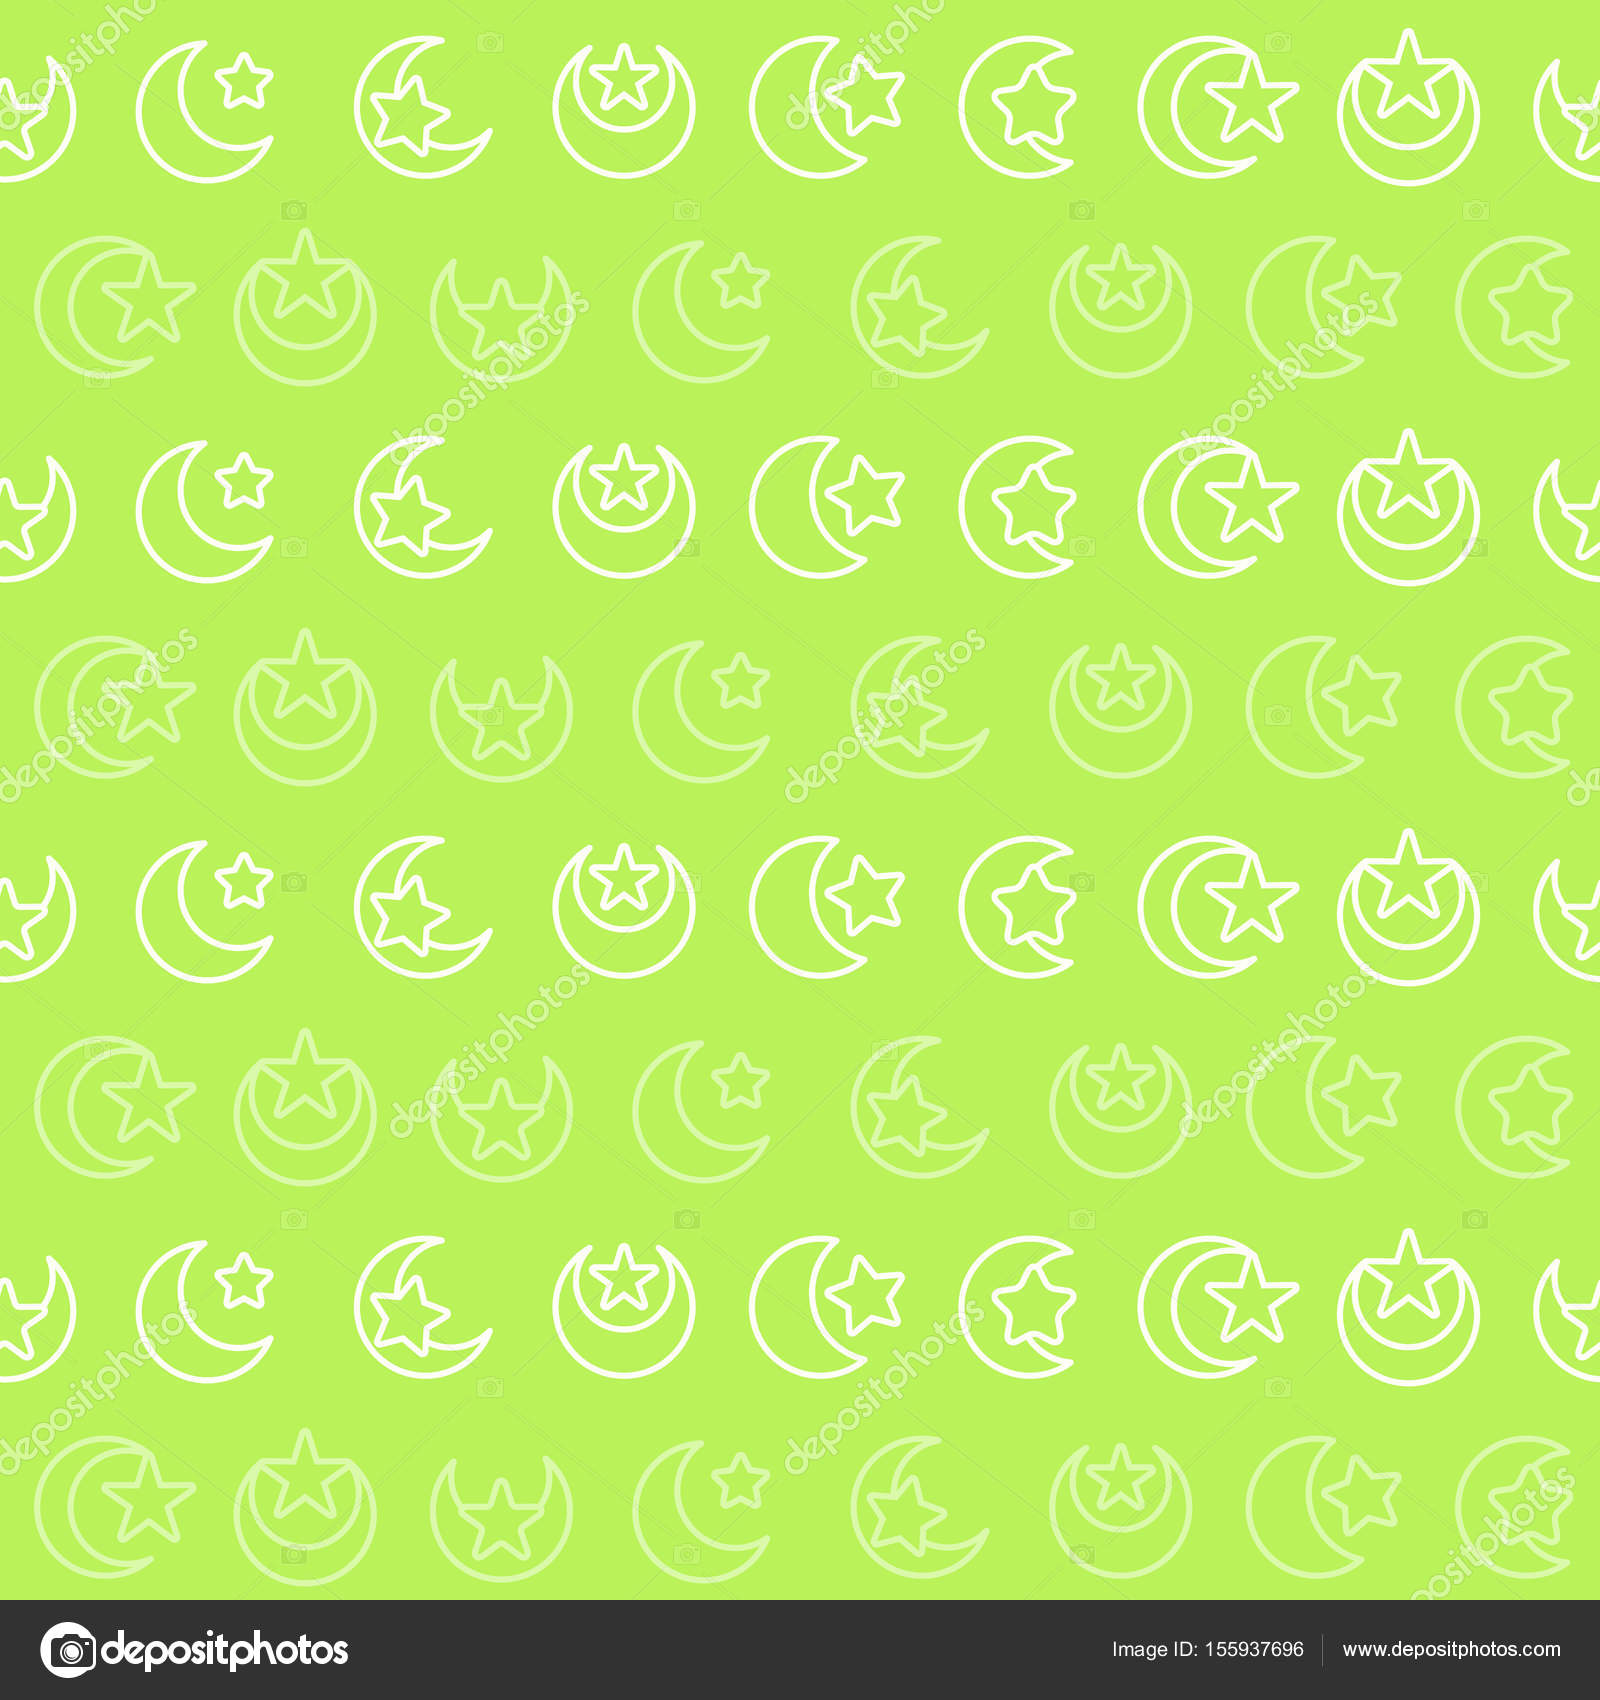 Seamless Pattern With Symbol Of Islam Crescent Moon With Star